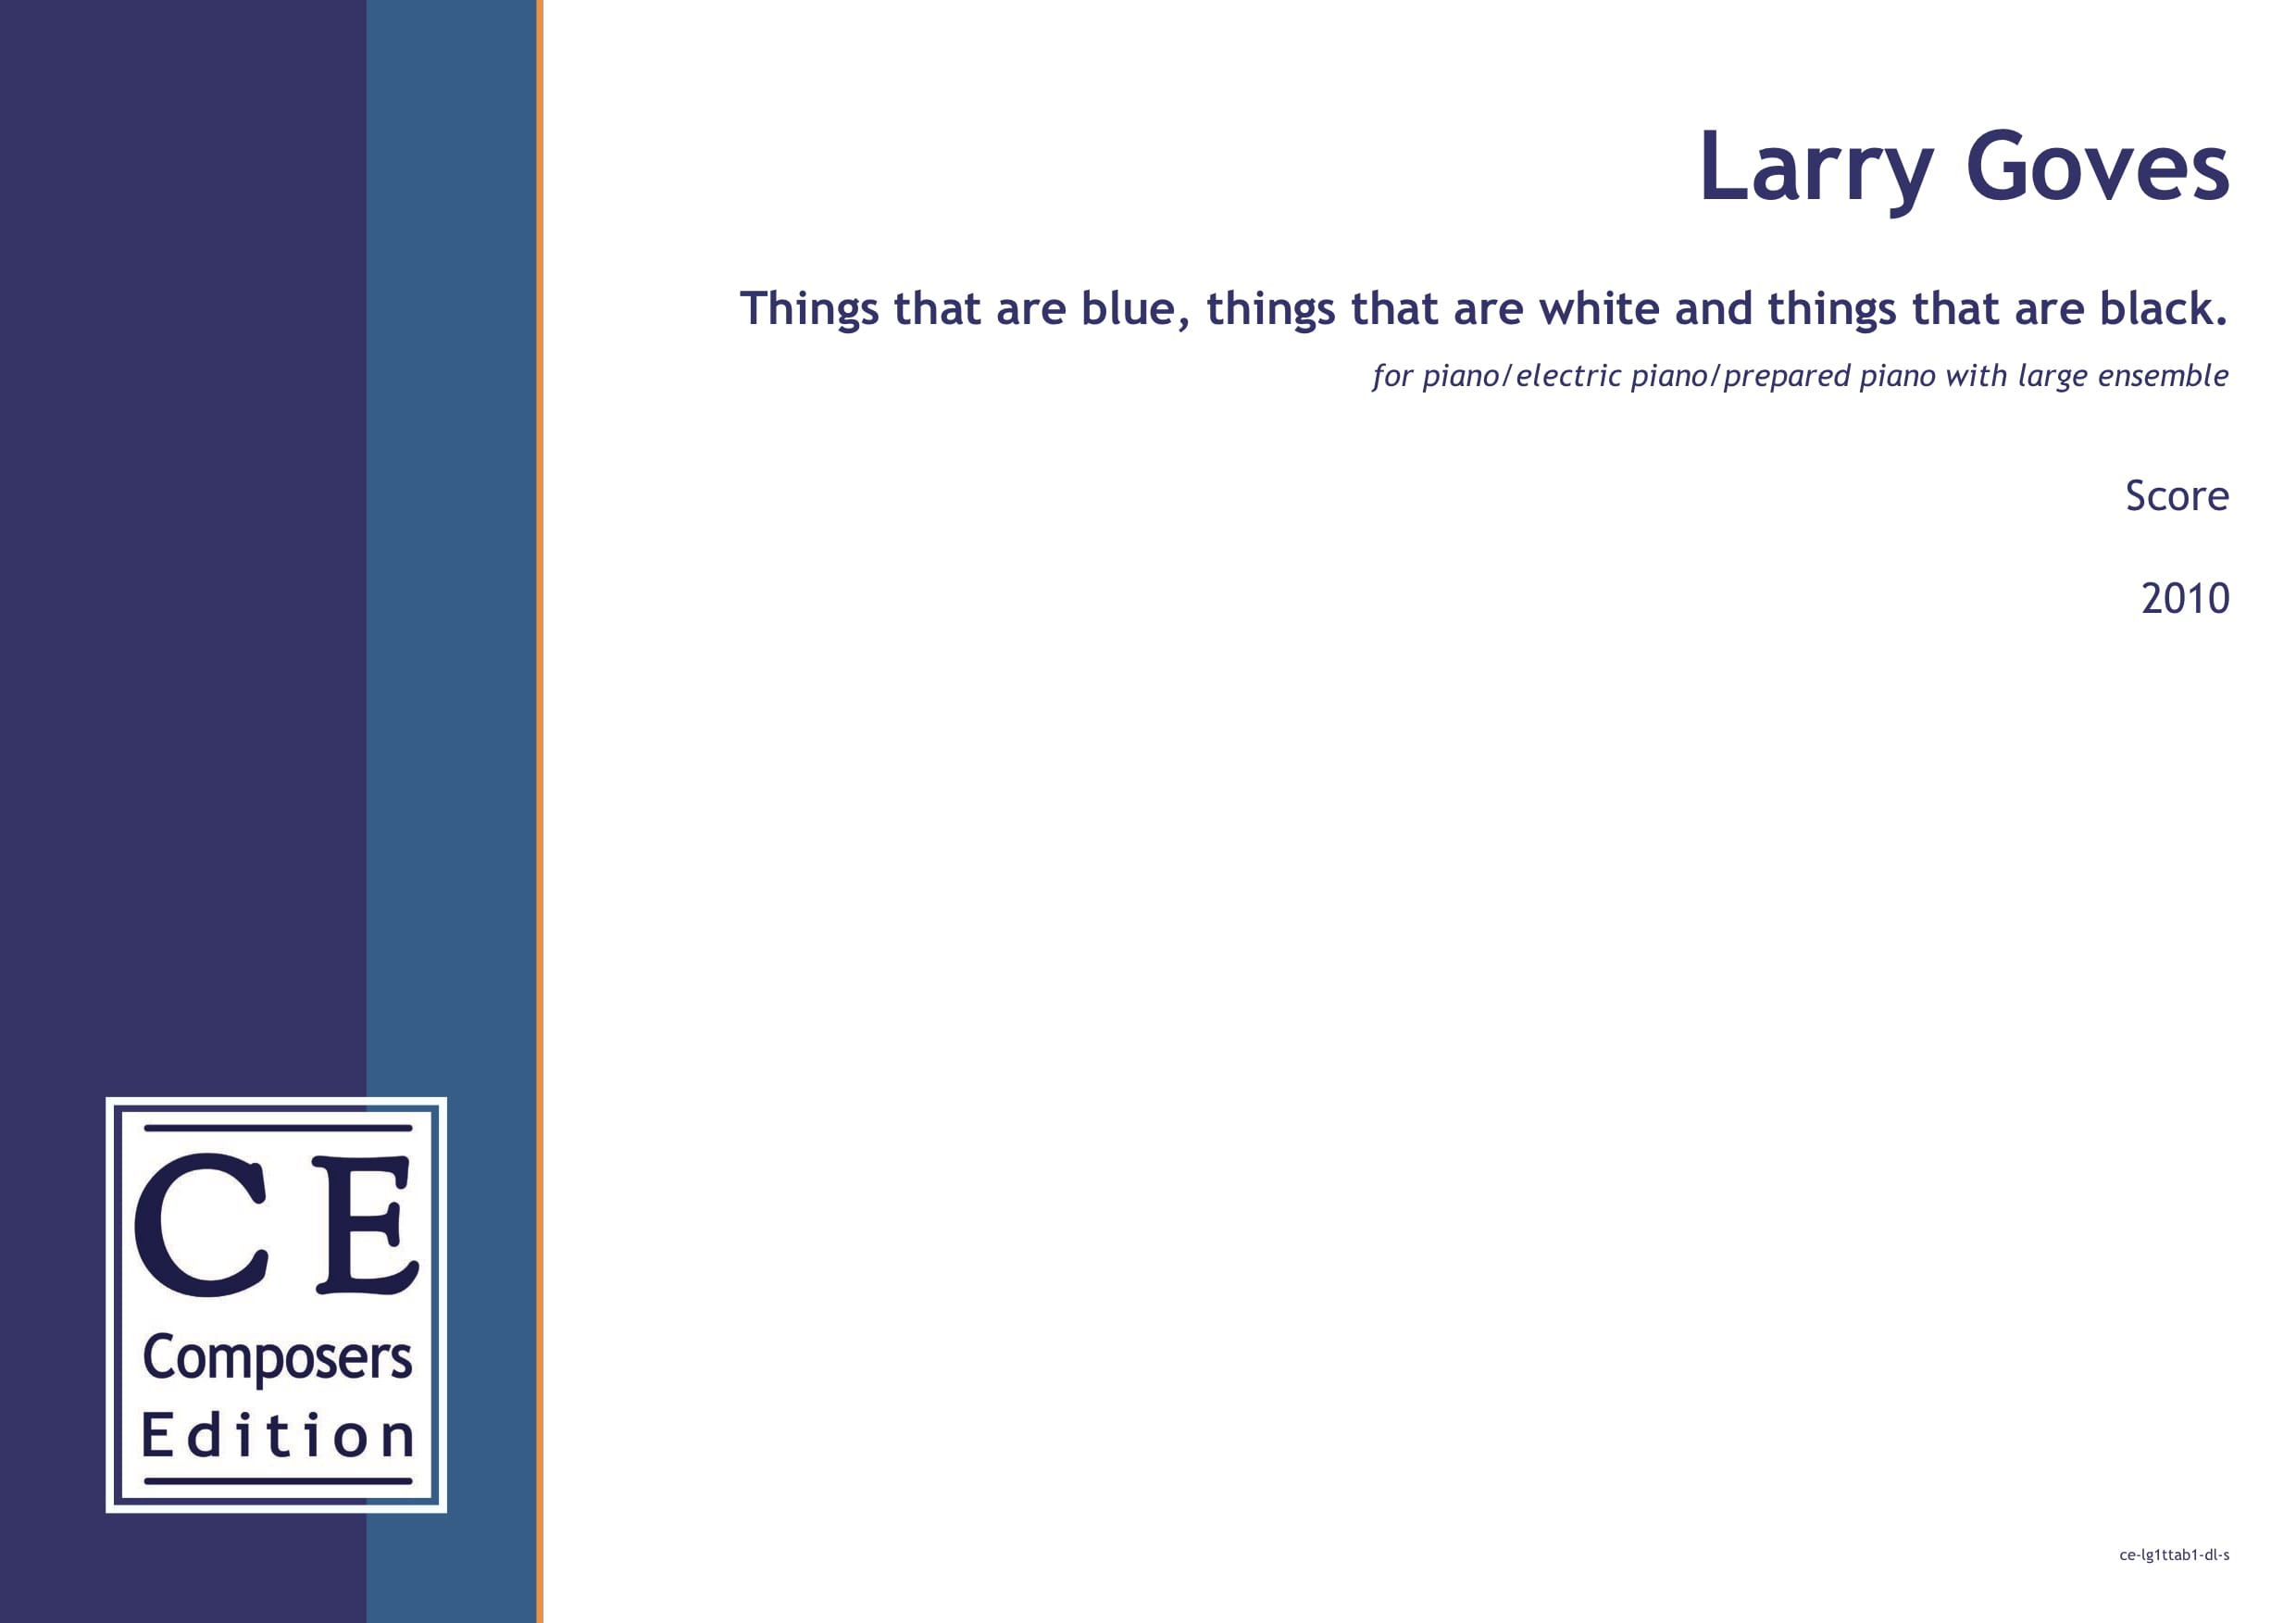 Larry Goves: Things that are blue, things that are white and things that are black. for piano/electric piano/prepared piano with large ensemble